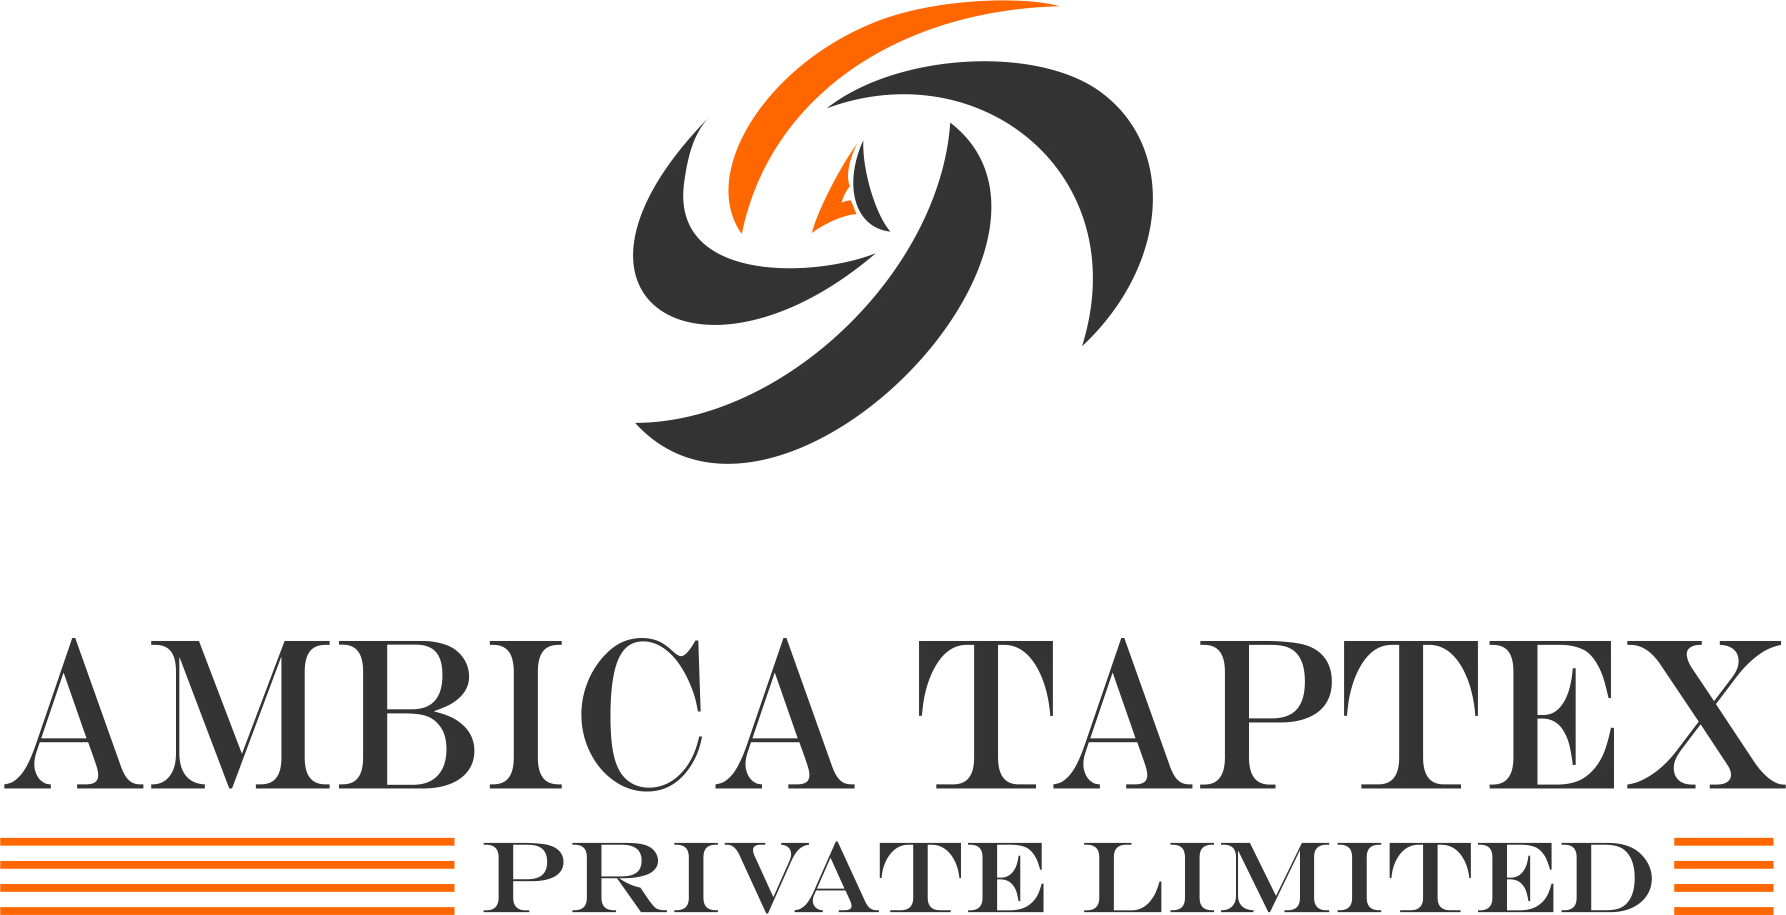 Ambica Taptex Private Limited